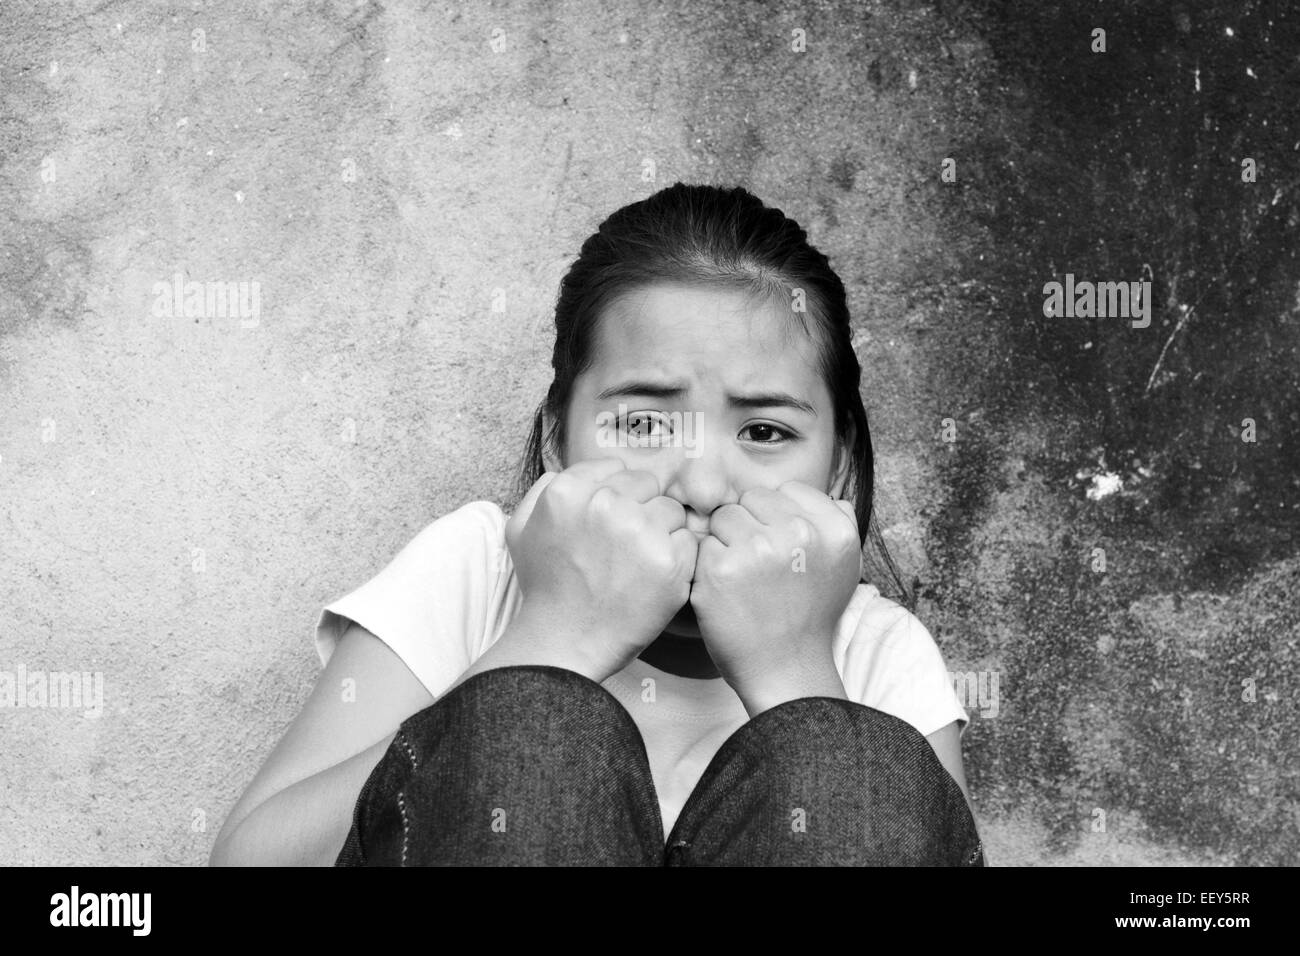 Crying Girl Black And White Stock Photos  Images - Alamy-9587